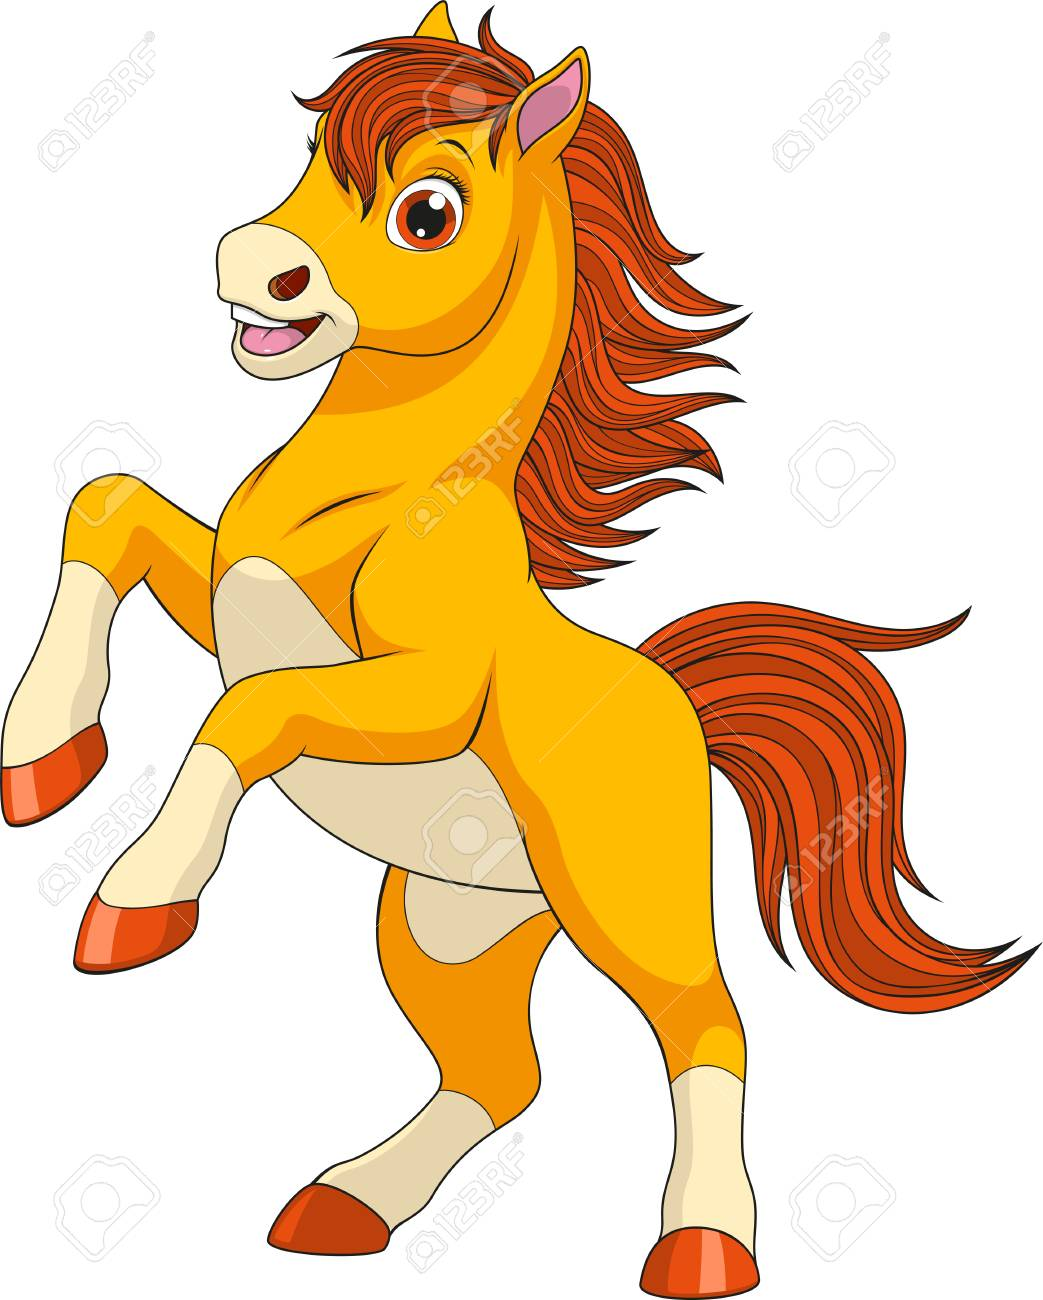 Vector Illustration Funny Baby Foal On A White Background Royalty Free Cliparts Vectors And Stock Illustration Image 90583634